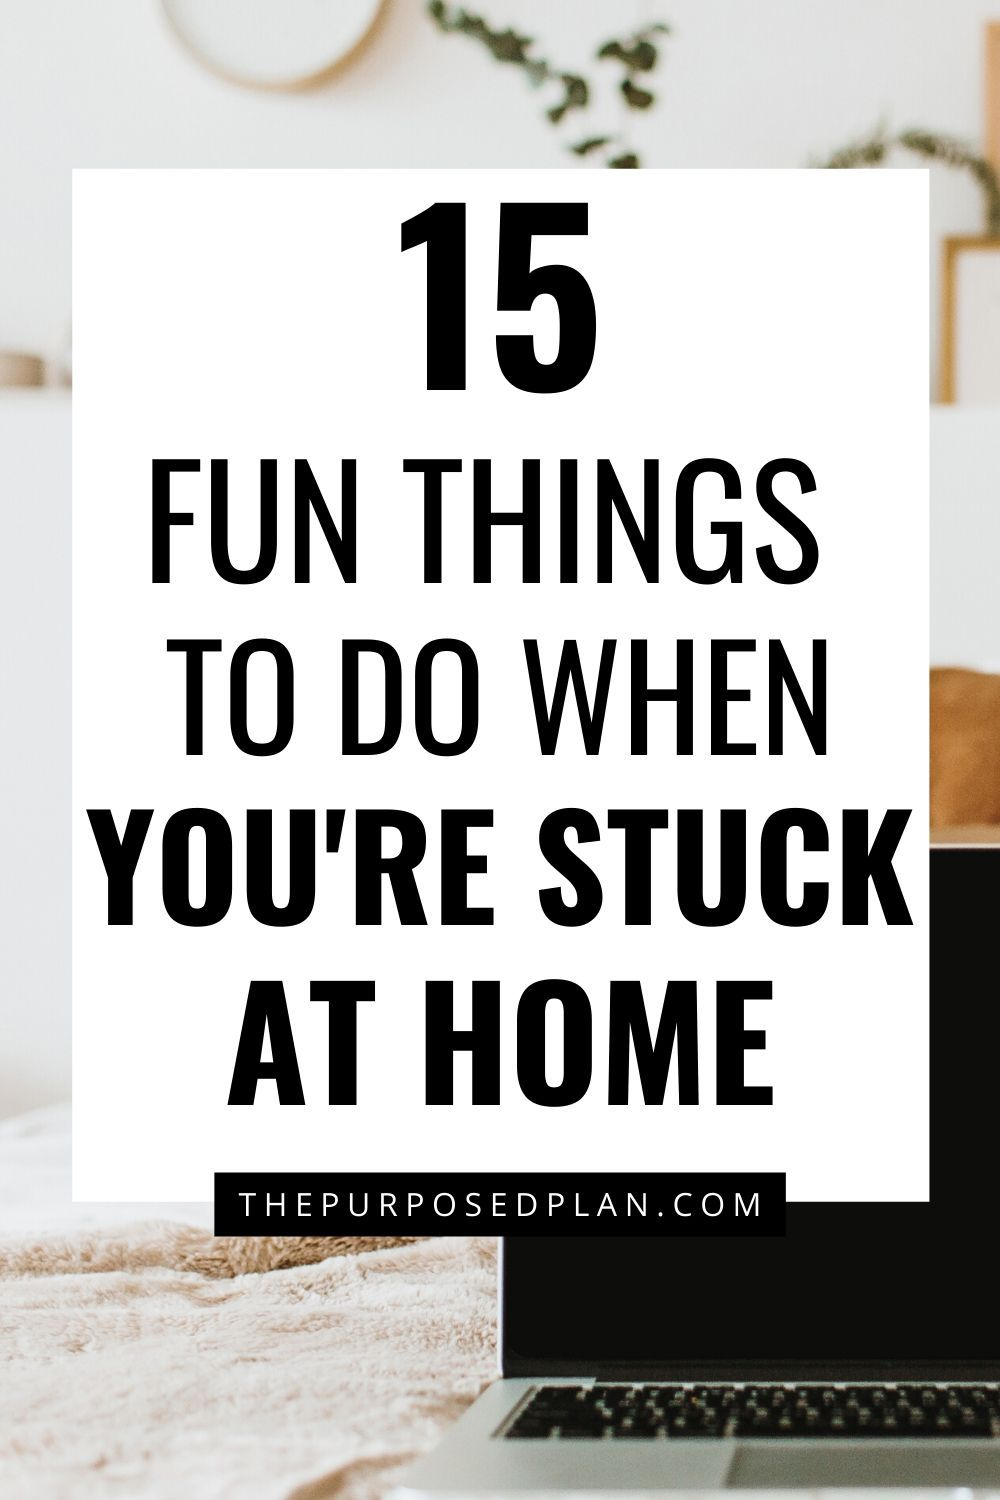 15 Things To Do When Bored At Home Things To Do When Bored Things To Do At Home Fun Things To Do